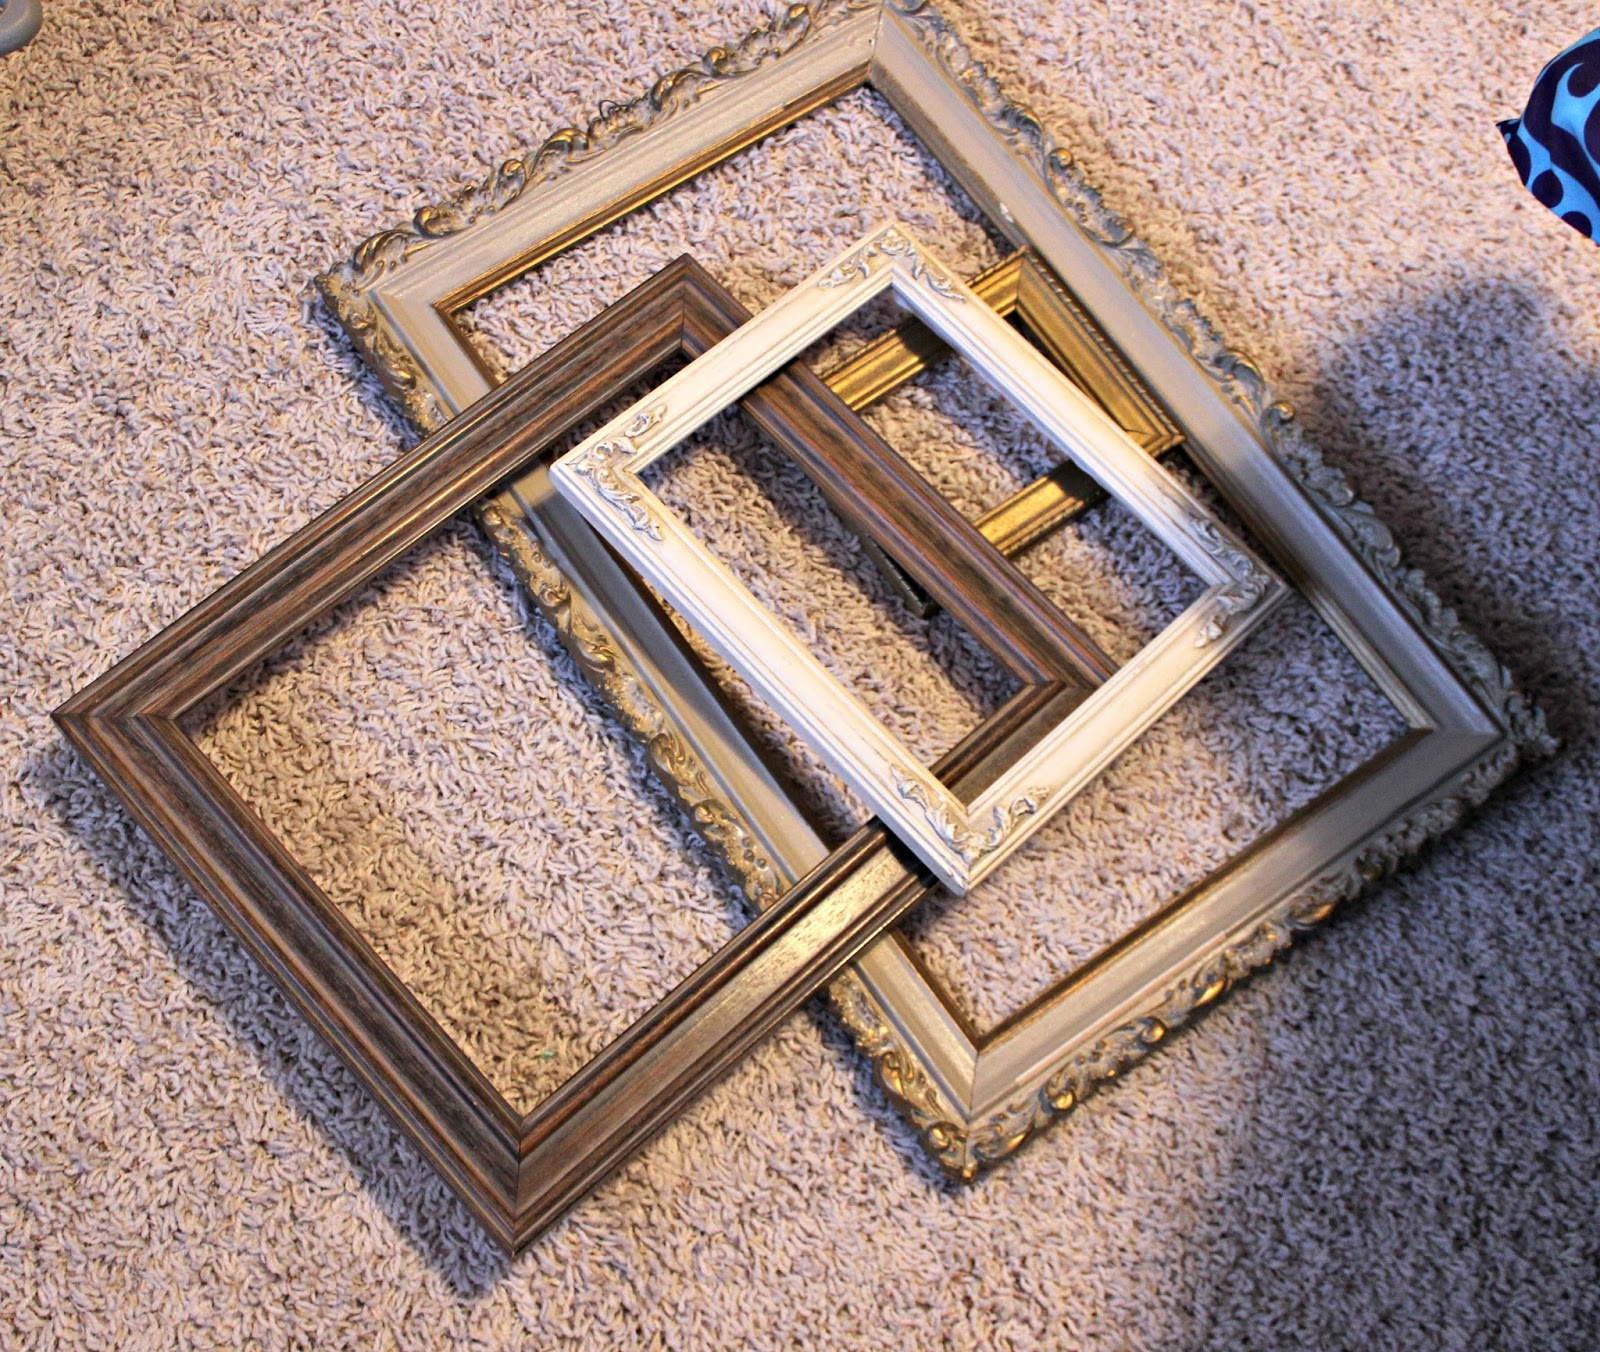 my christmas project today starts with this pile of thrift shop frames the sizes are measured from outside edges 12 x 10 14 x 17 17 x 24